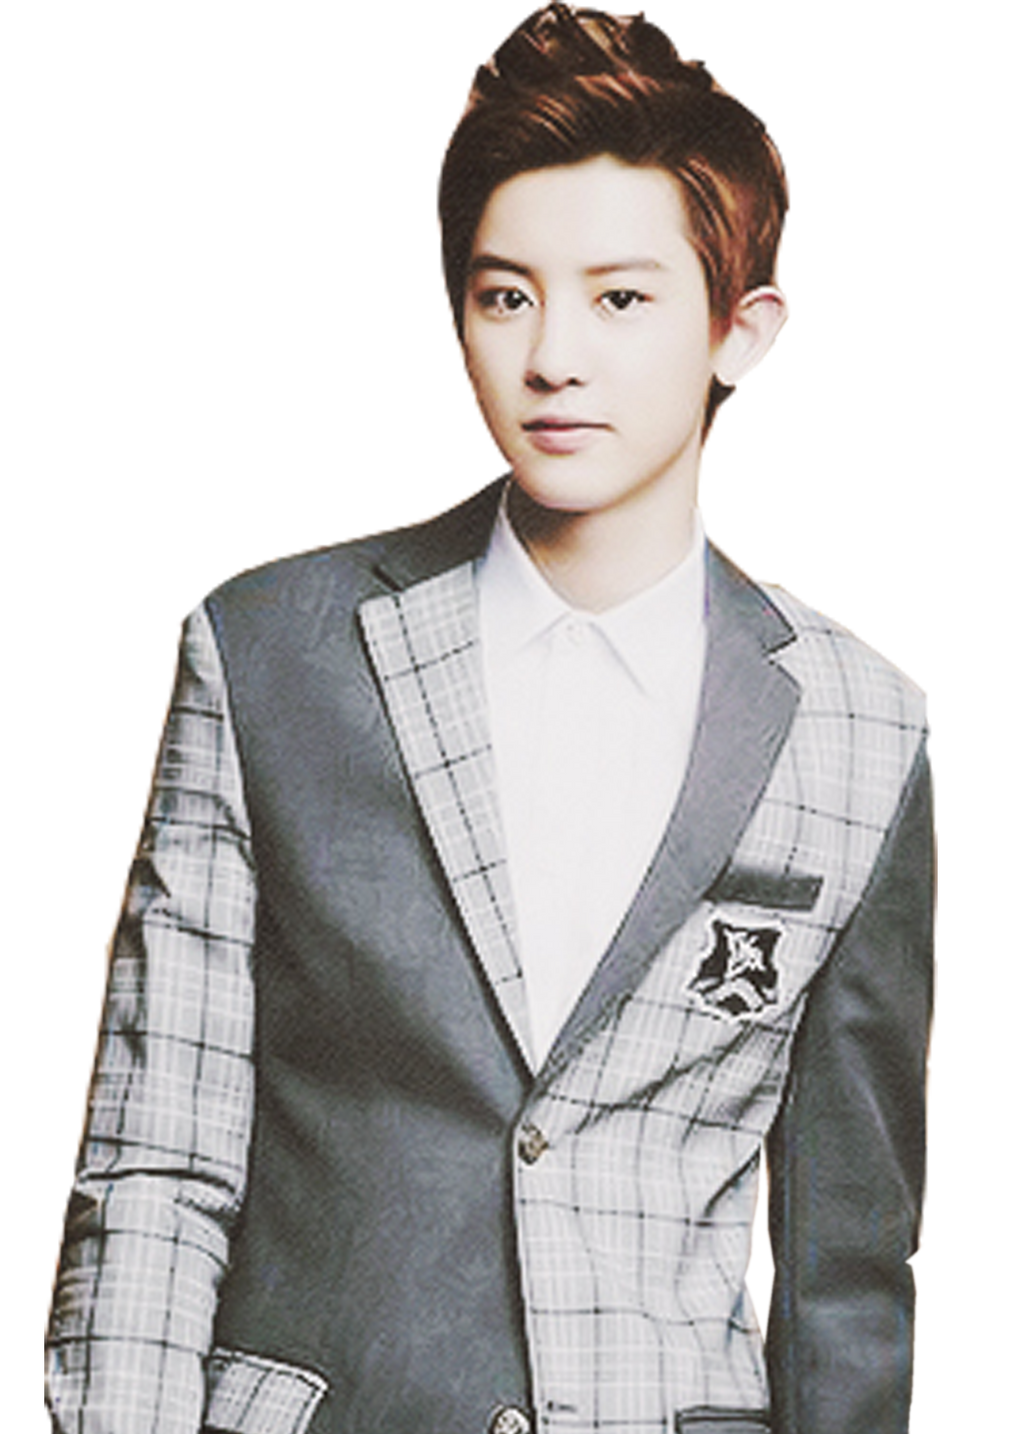 EXO Chanyeol PNG (1) by Jocy12 on DeviantArt